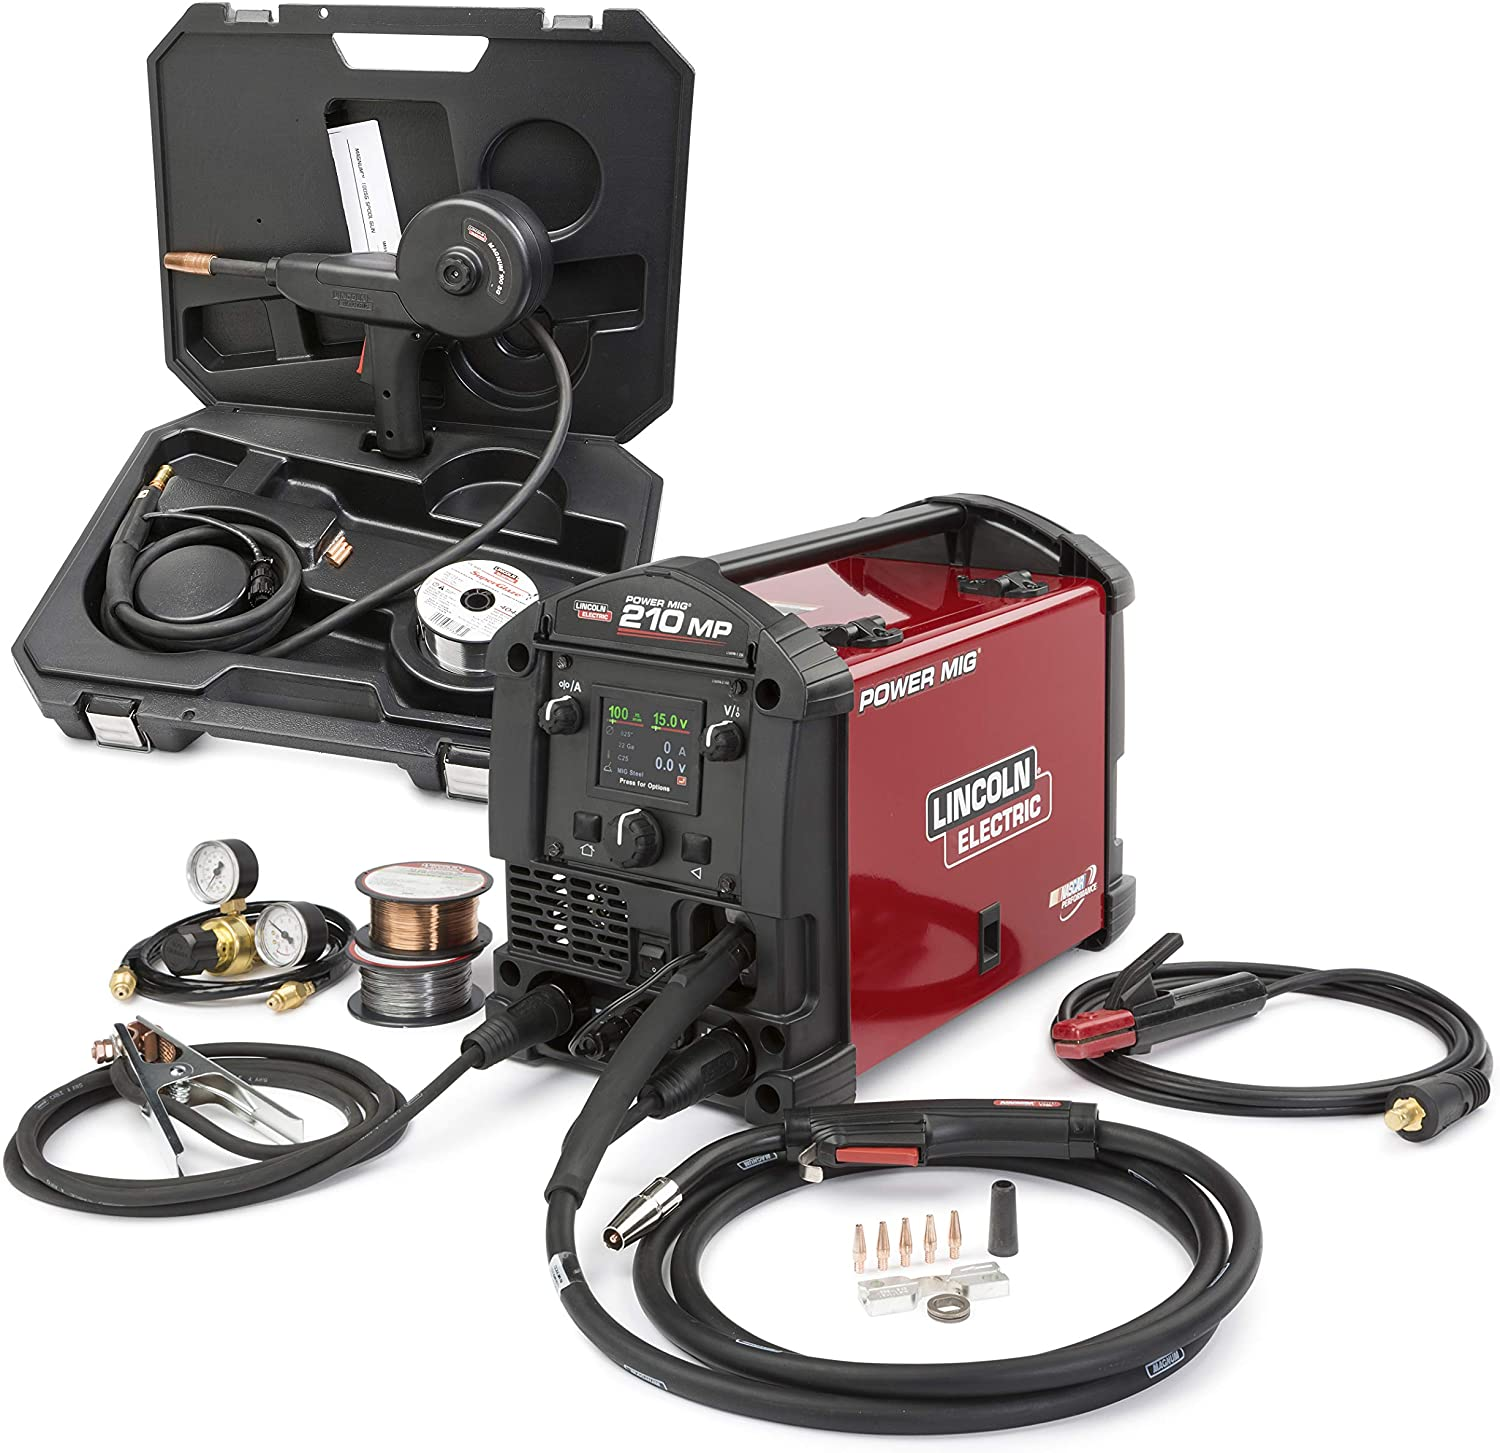 Lincoln Electric POWER MIG welder 210 MP